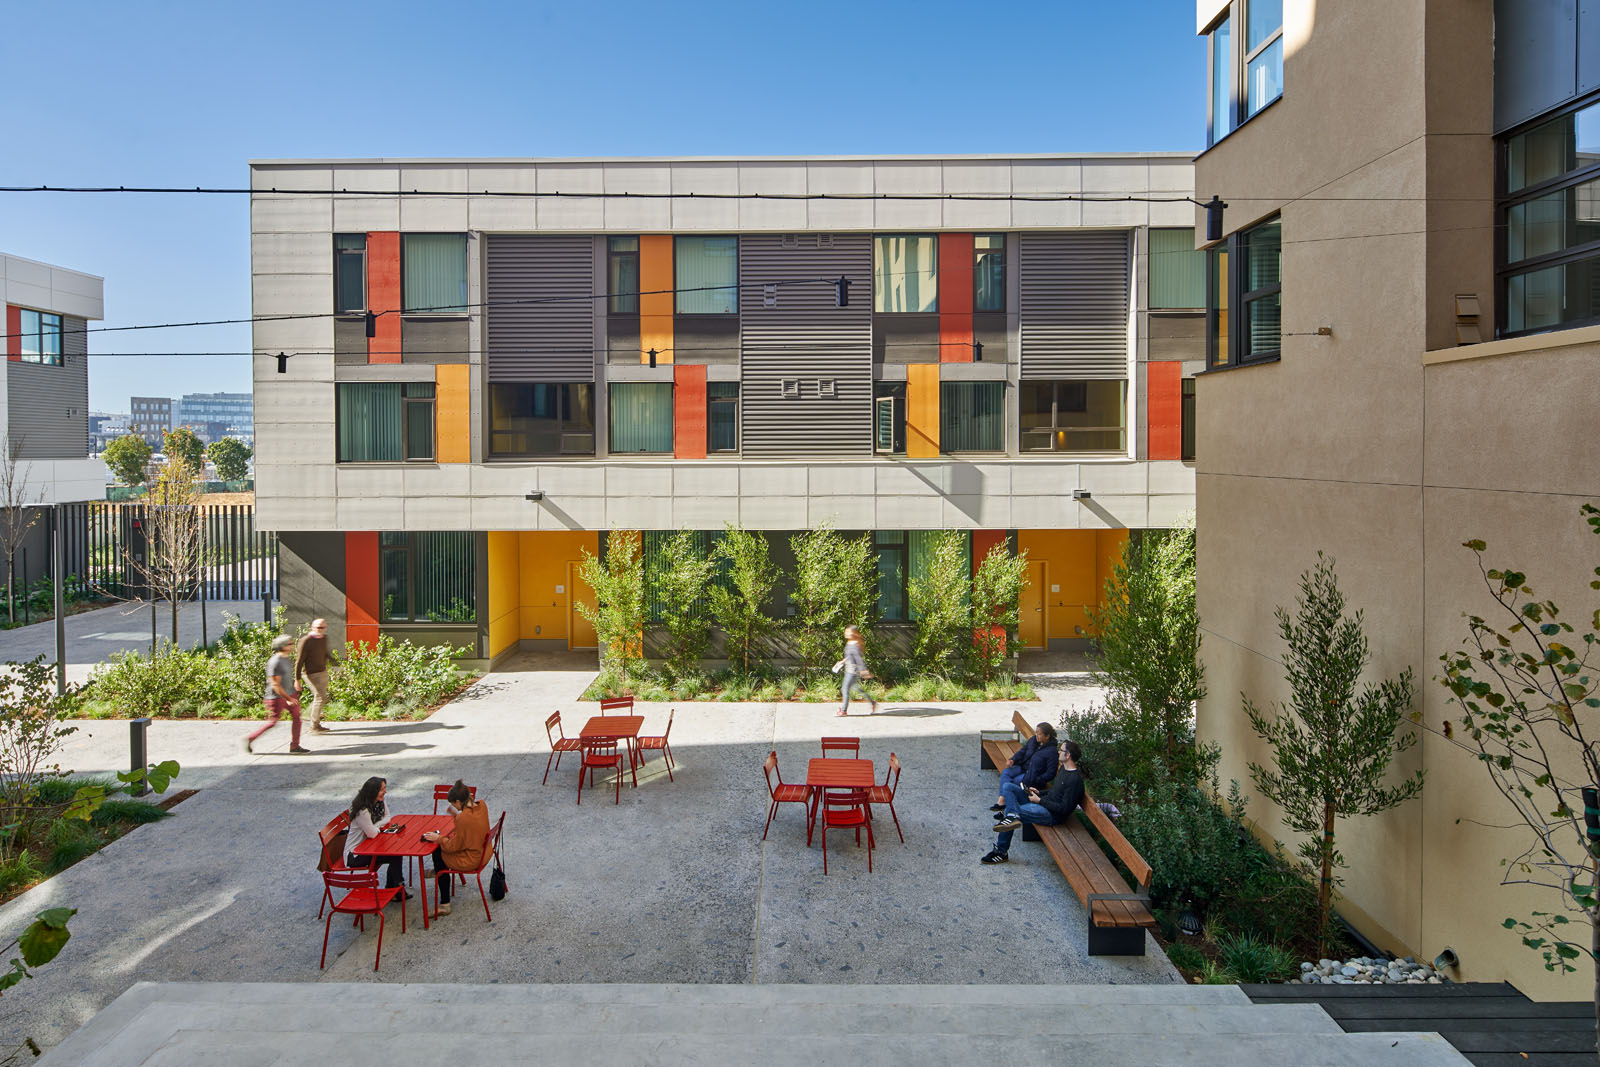 626 Mission Bay Wins Affordable Housing Deal of the Year!